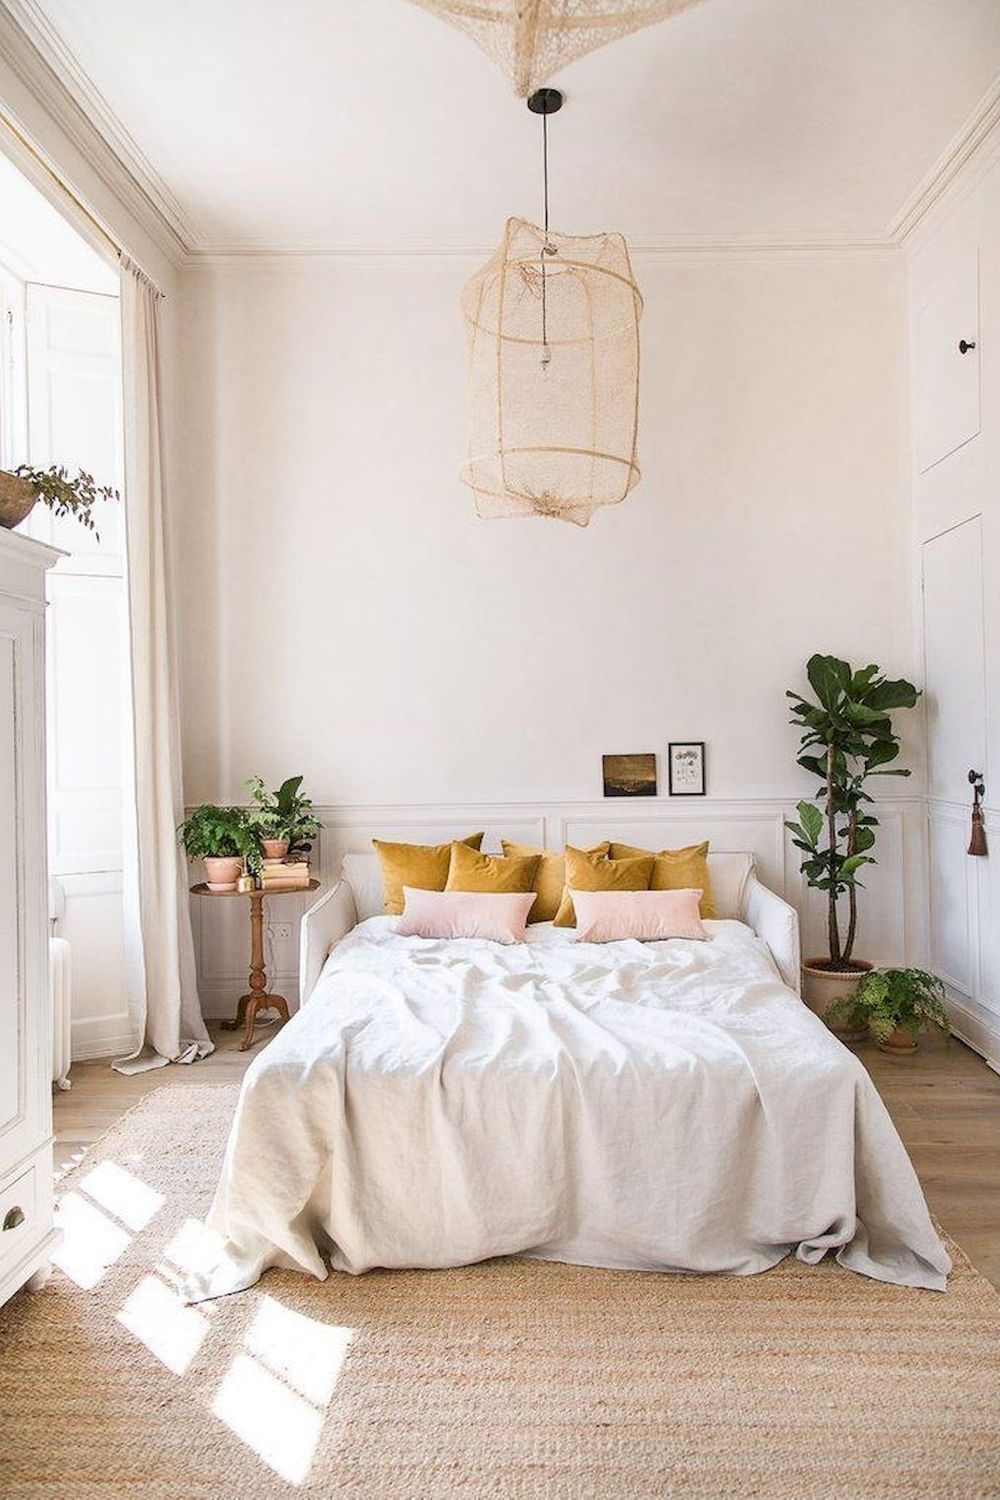 Home Decoration Christmas In 2020 Vintage Bedroom Decor Modern Vintage Bedrooms Bedroom Vintage